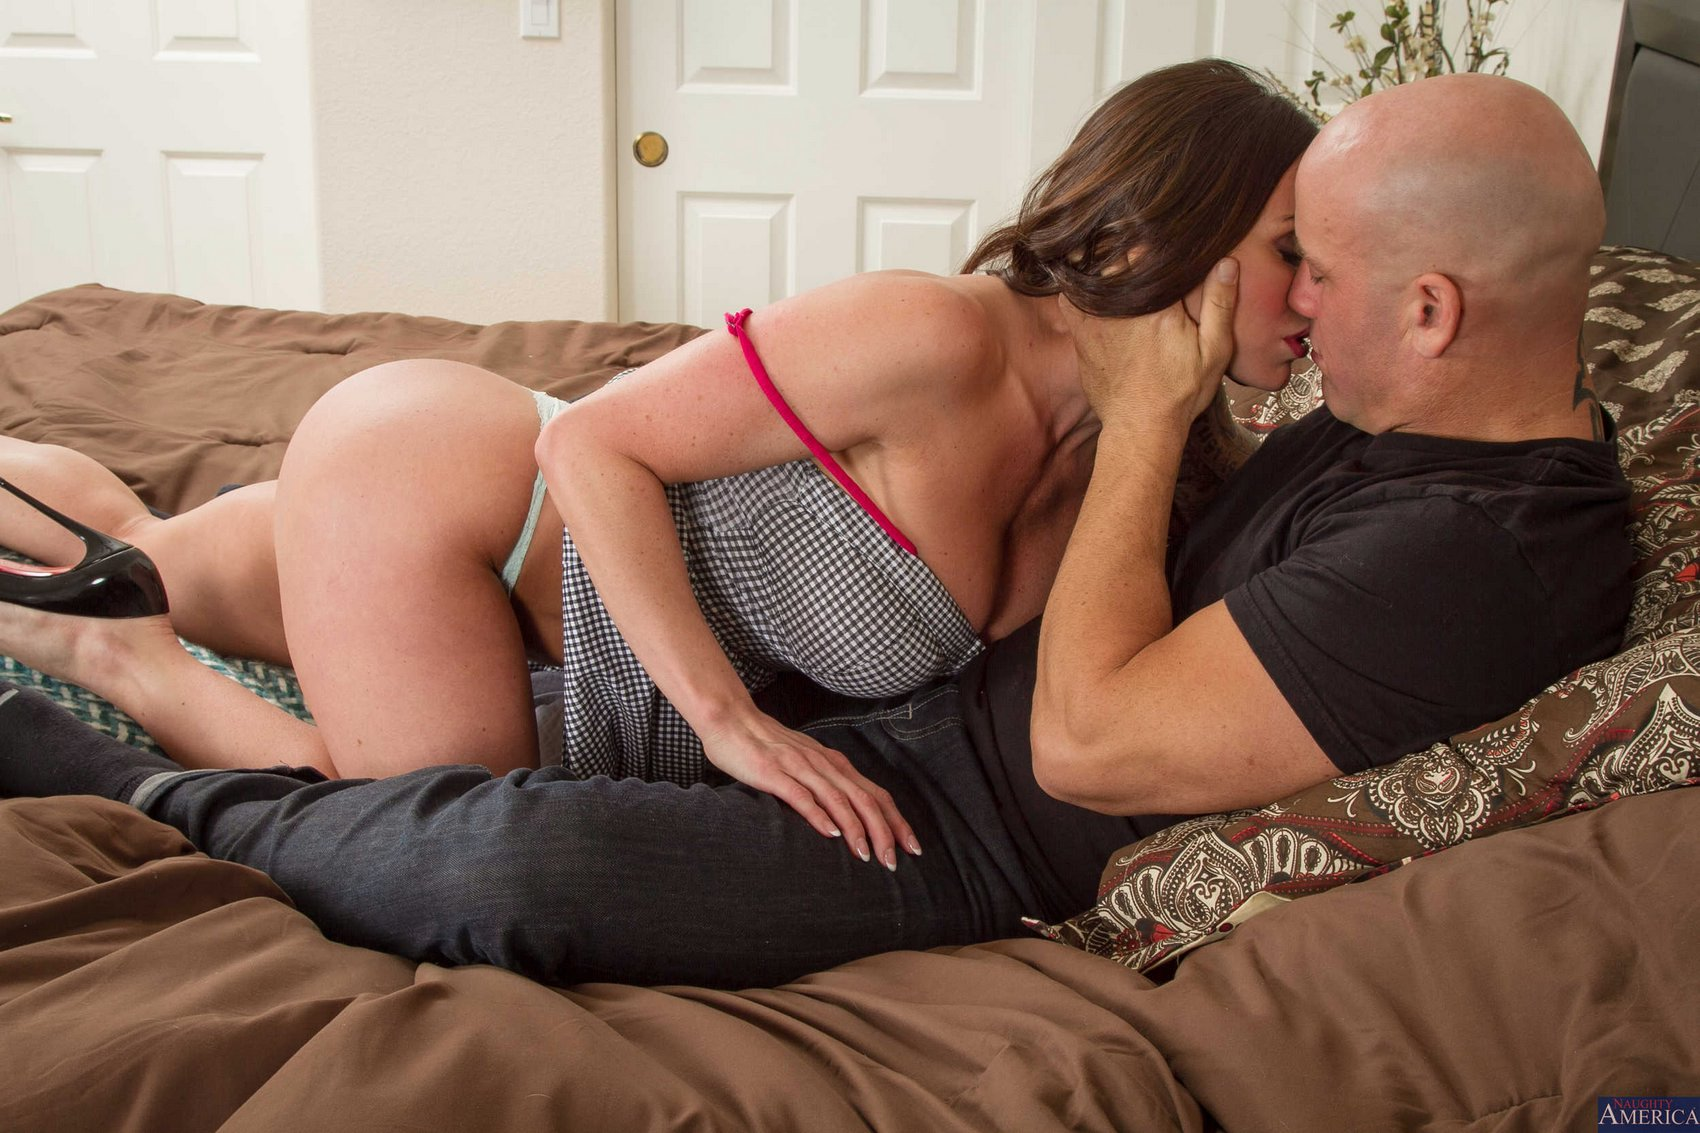 kendra lust seduce - Gorgeous MILF Kendra Lust seducing her neighbor.